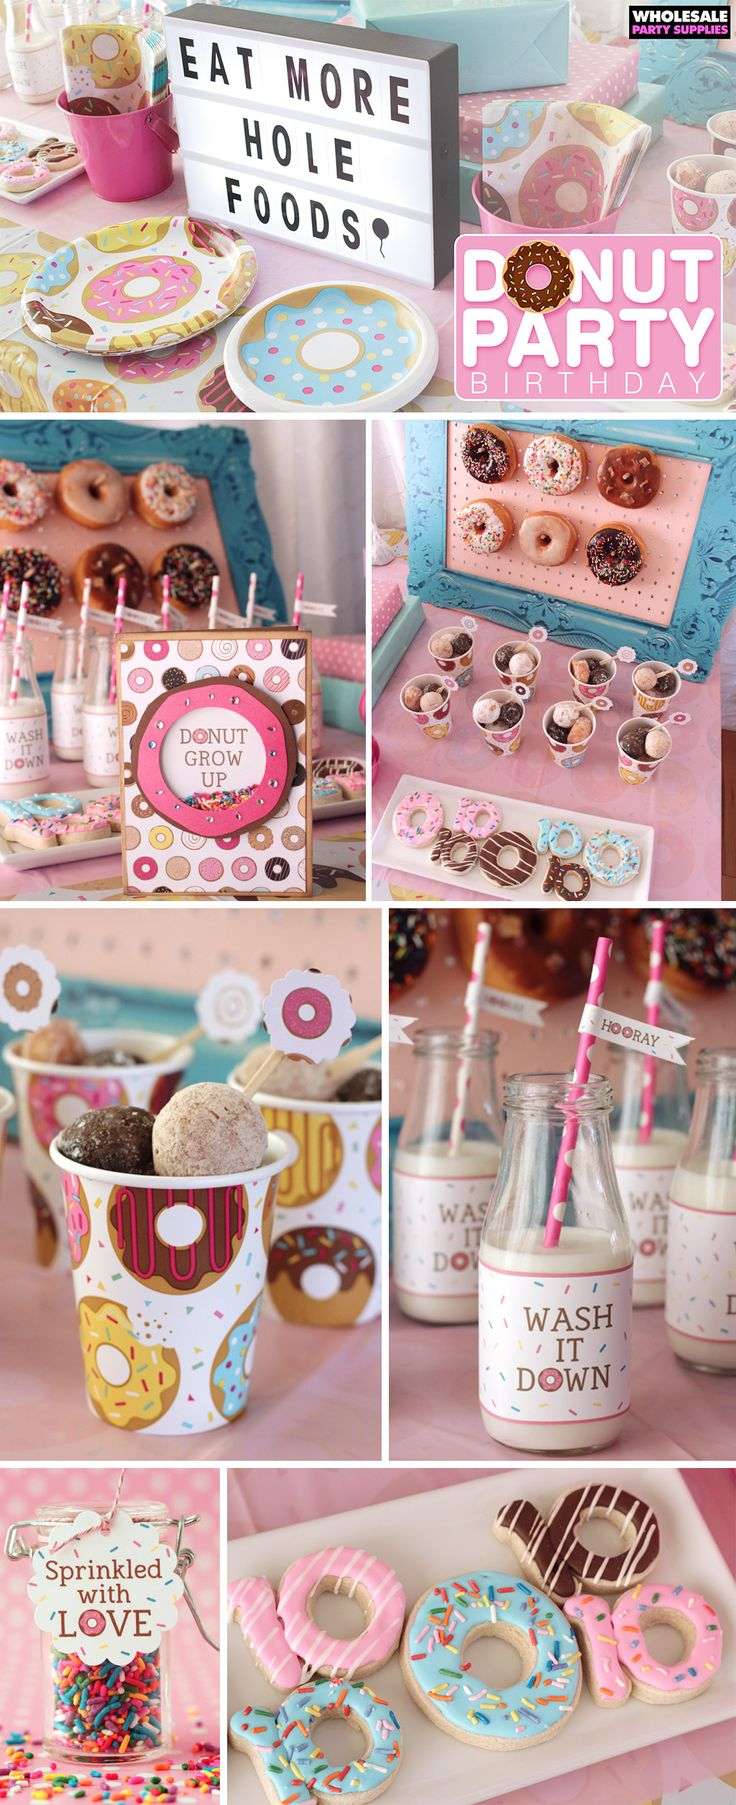 Donut Party Birthday Ideas